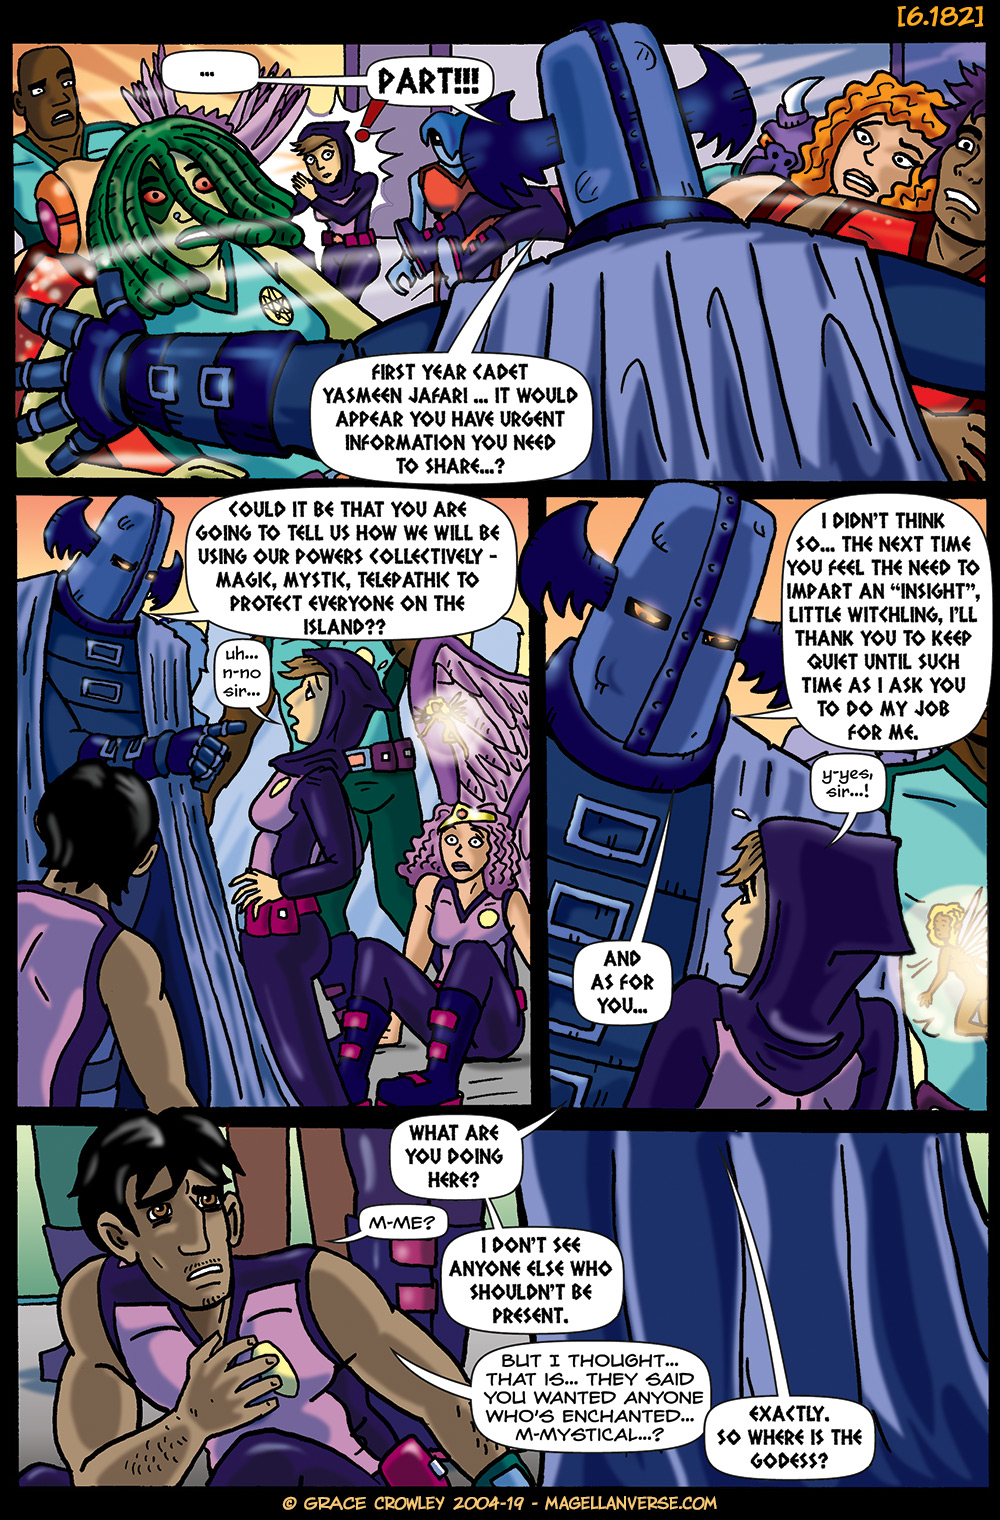 Page 6.182